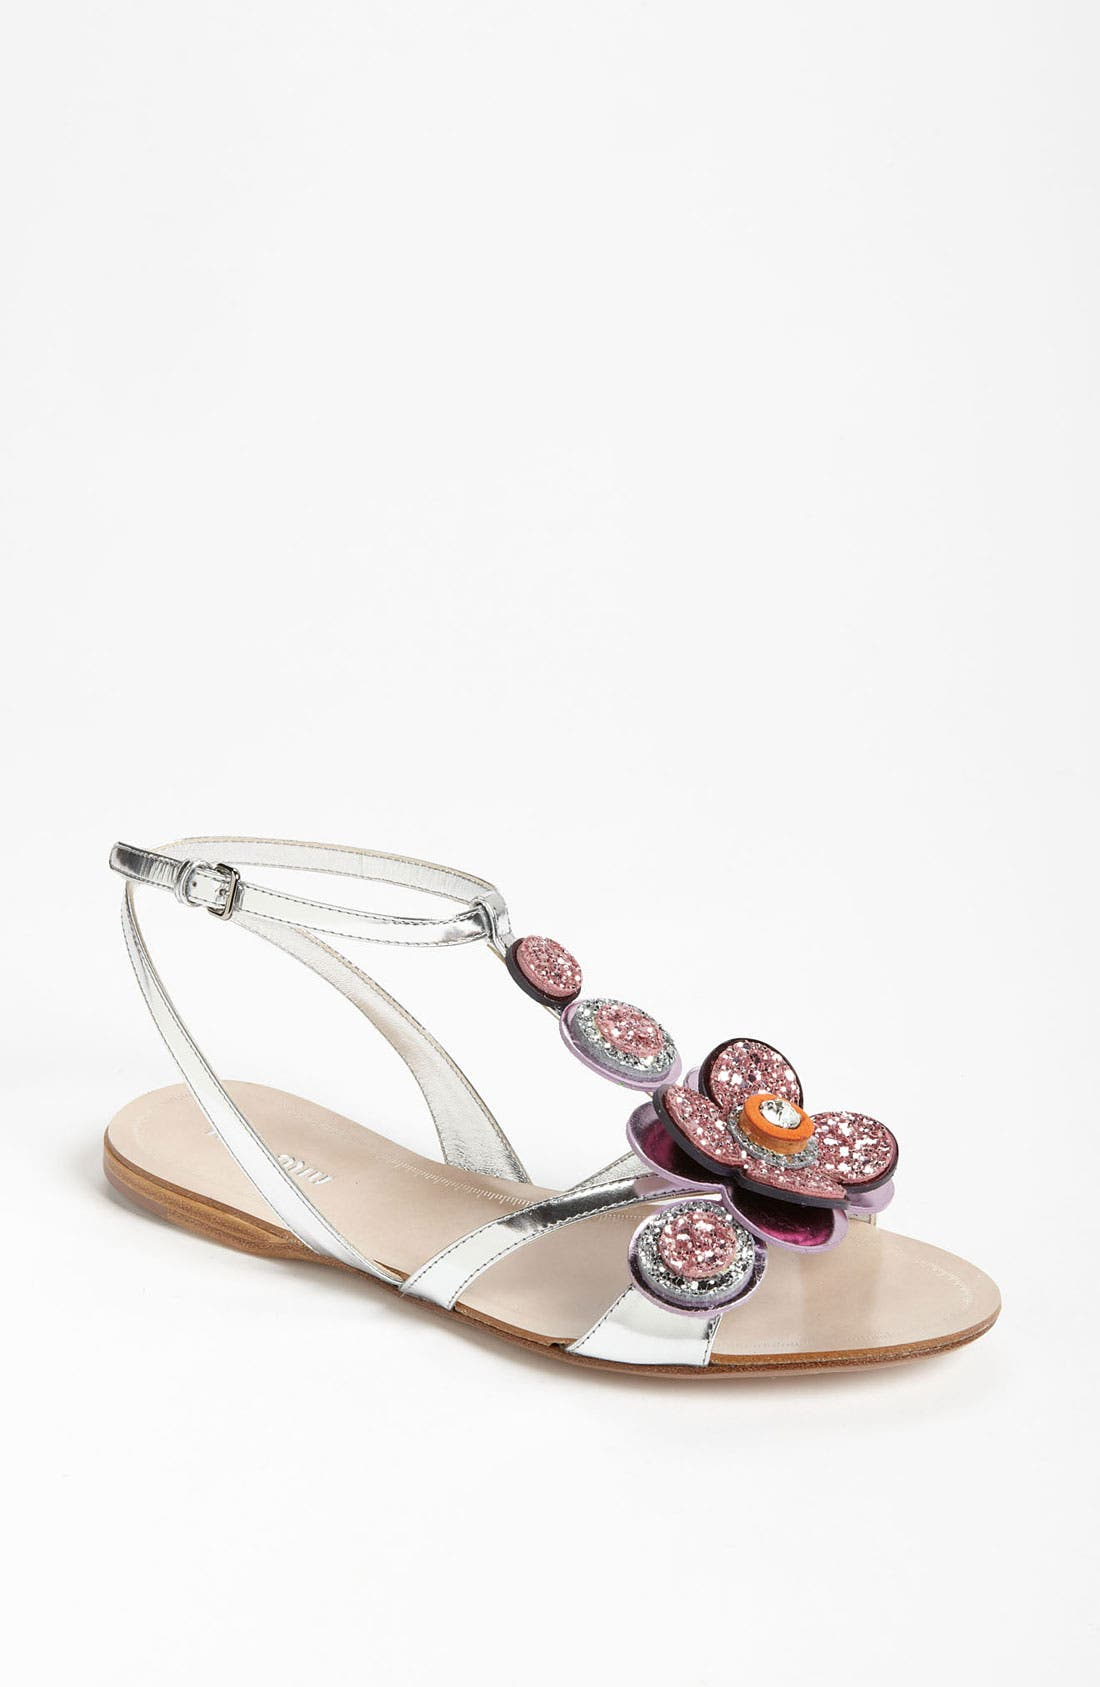 Alternate Image 1 Selected - Miu Miu T-Strap Flower Sandal